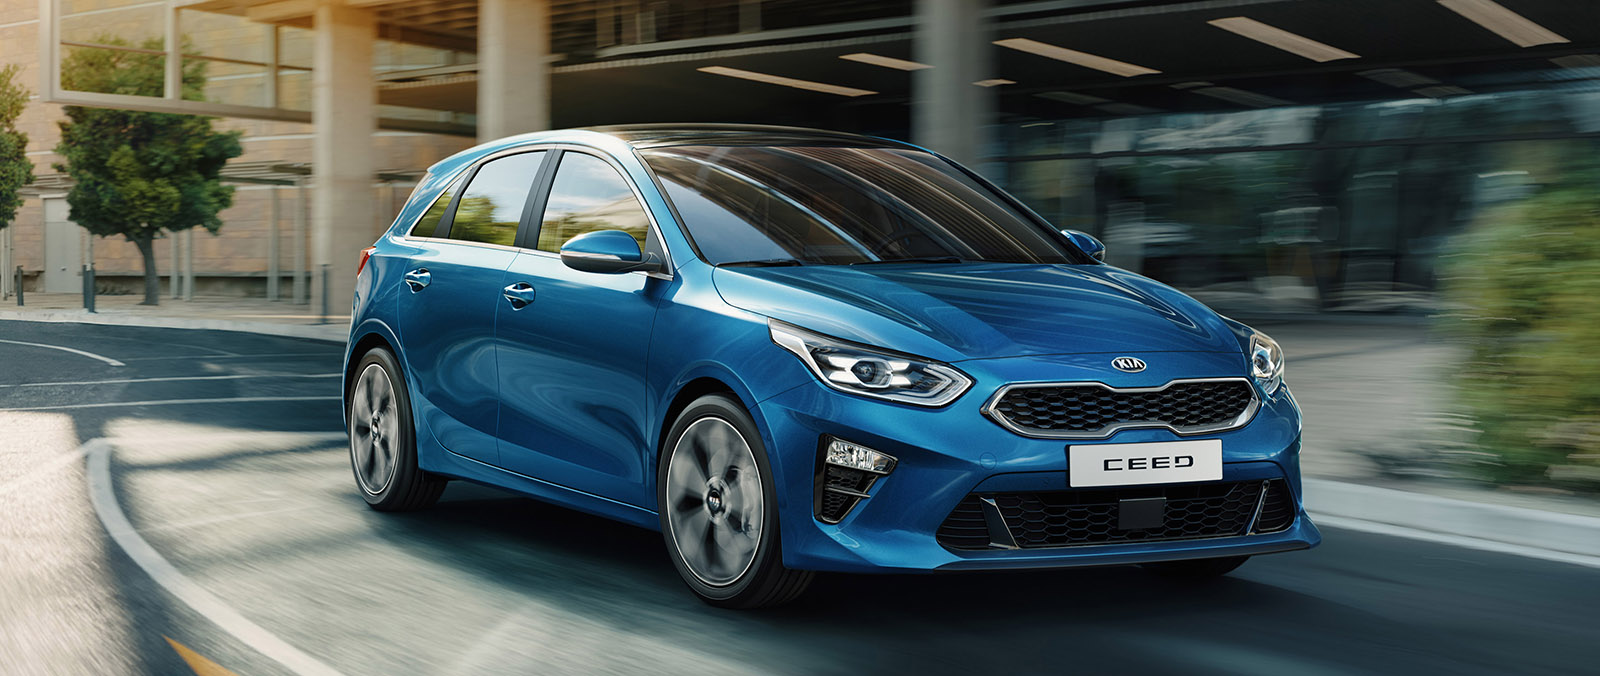 Kia Ceed vanaf 4 juli in de showroom